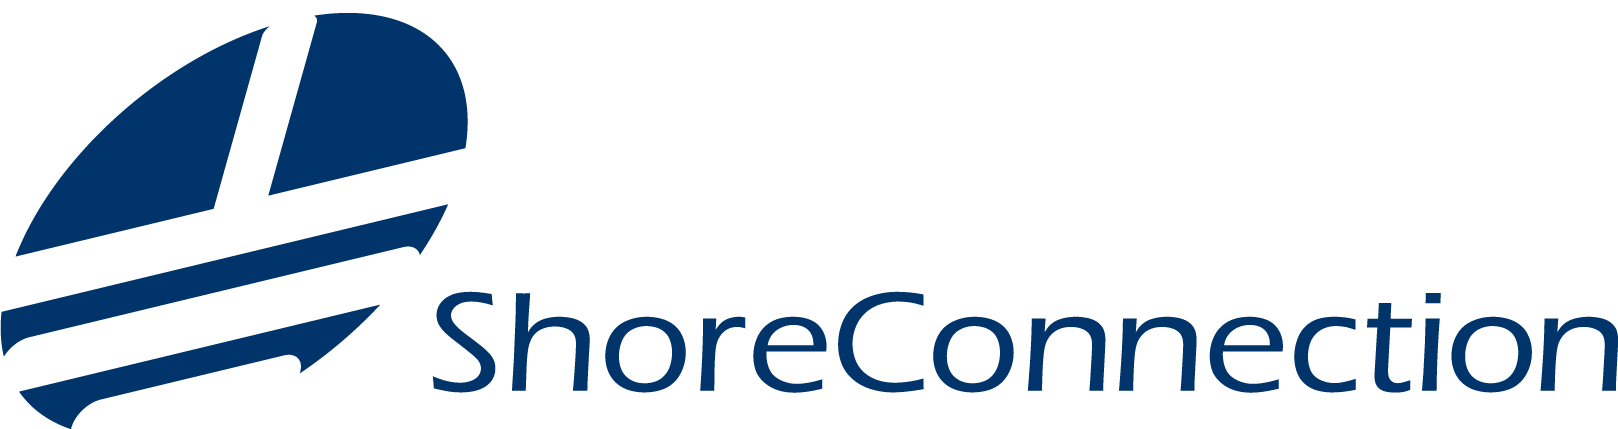 Shoreconnection Logo